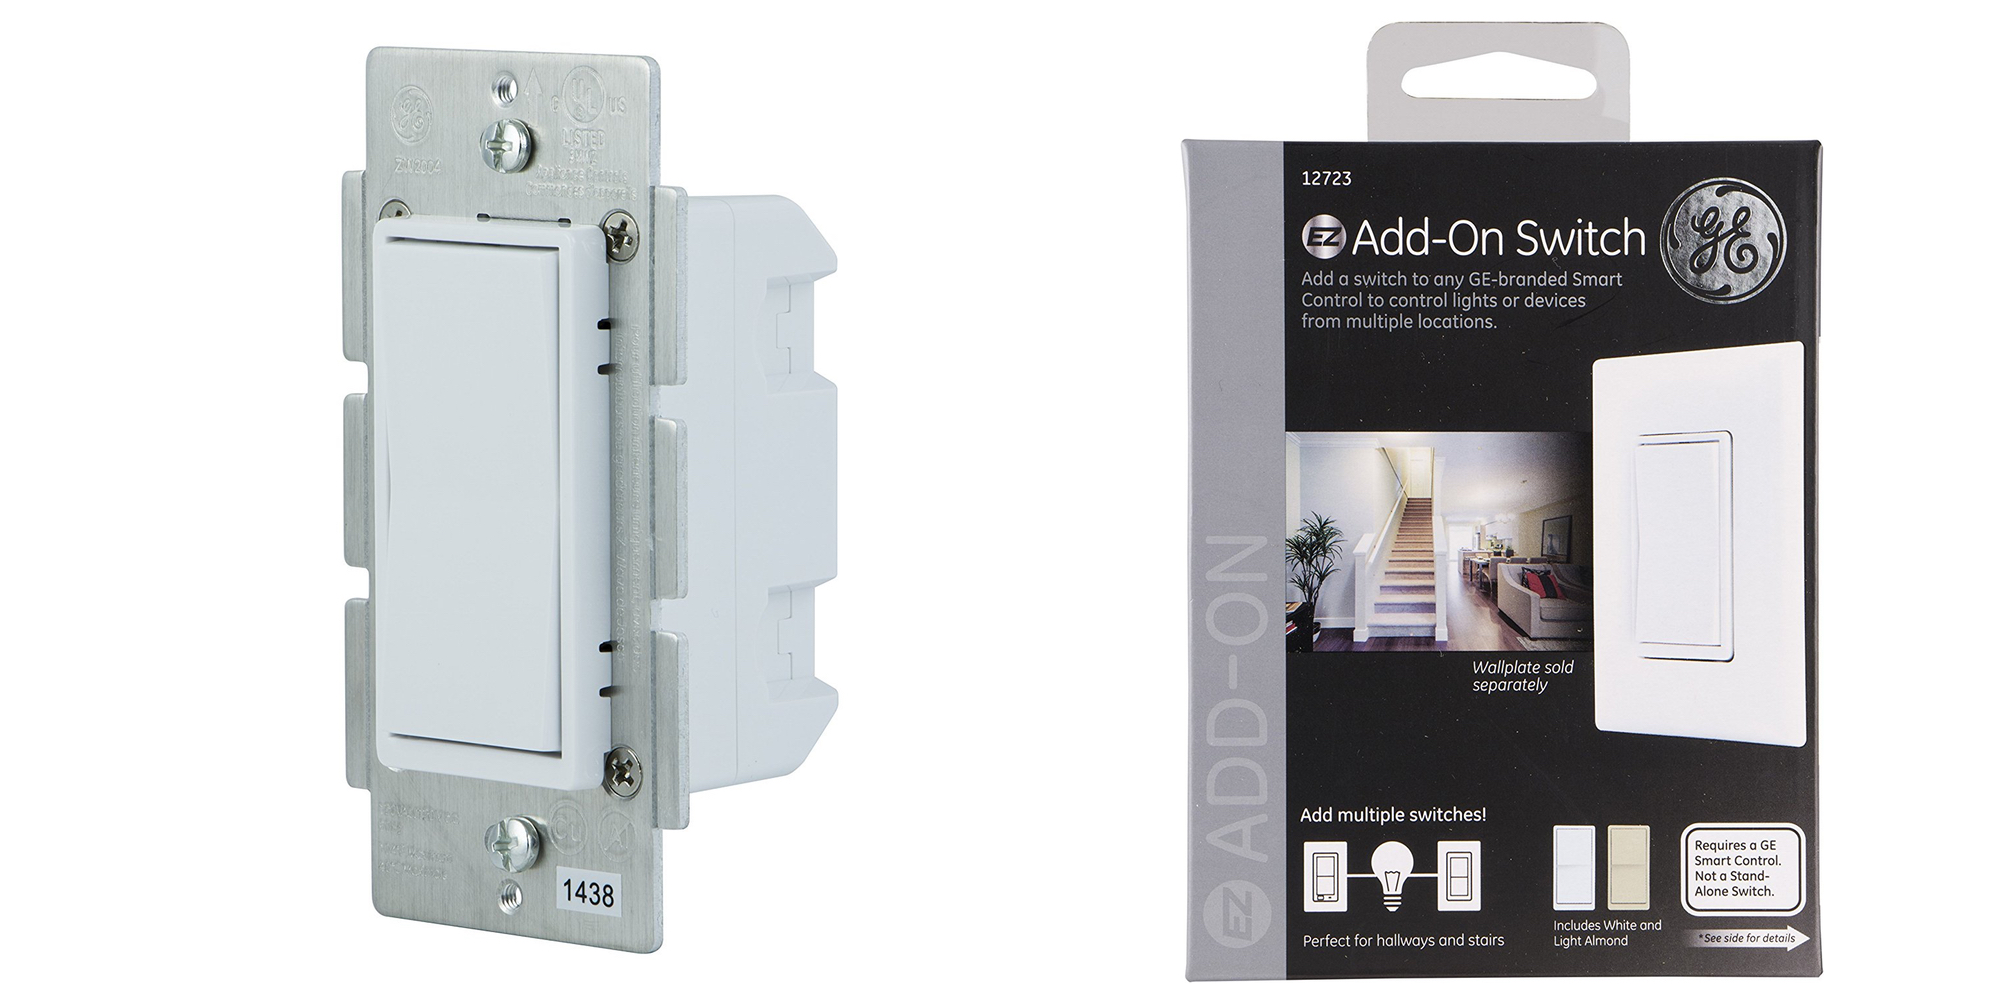 Control Wi Fi Outlets And More With Ge S 16 50 Smart Home